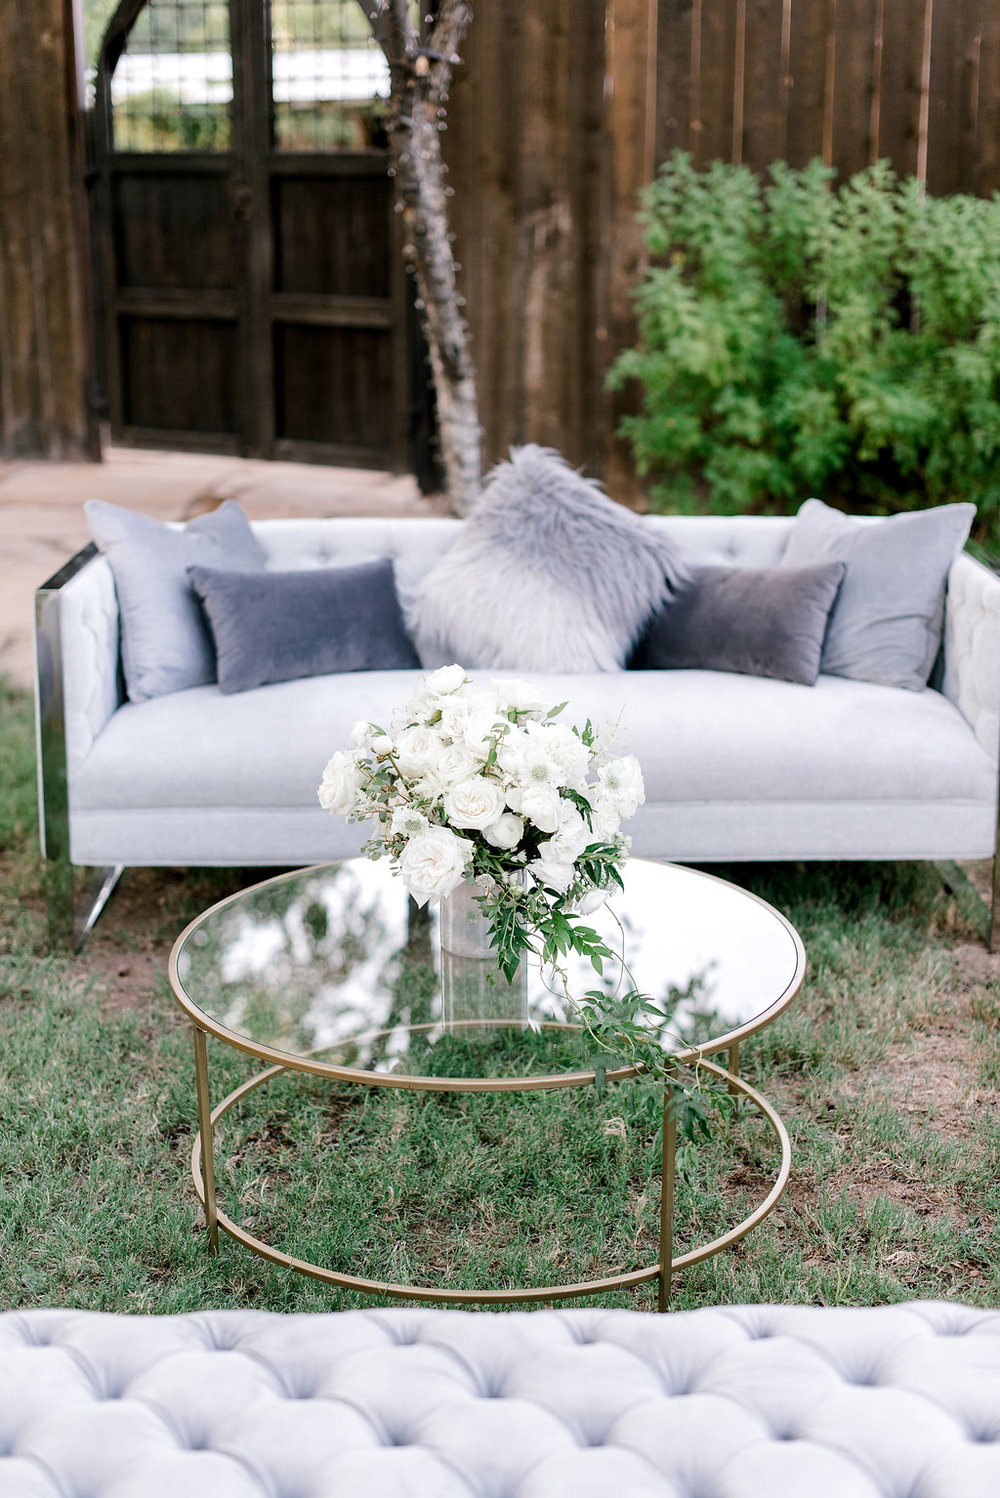 Black Tie Garden Wedding Styled Shoot Inspired by The Royal Wedding featured on Arizona Weddings- Konsider It Done- AZ Arizona Wedding & Event Planner, Designer, Coordinator Planning in Scottsdale, Phoenix, Paradise Valley, Tempe, Gilbert, Mesa, Chandler, Tucson, Sedona